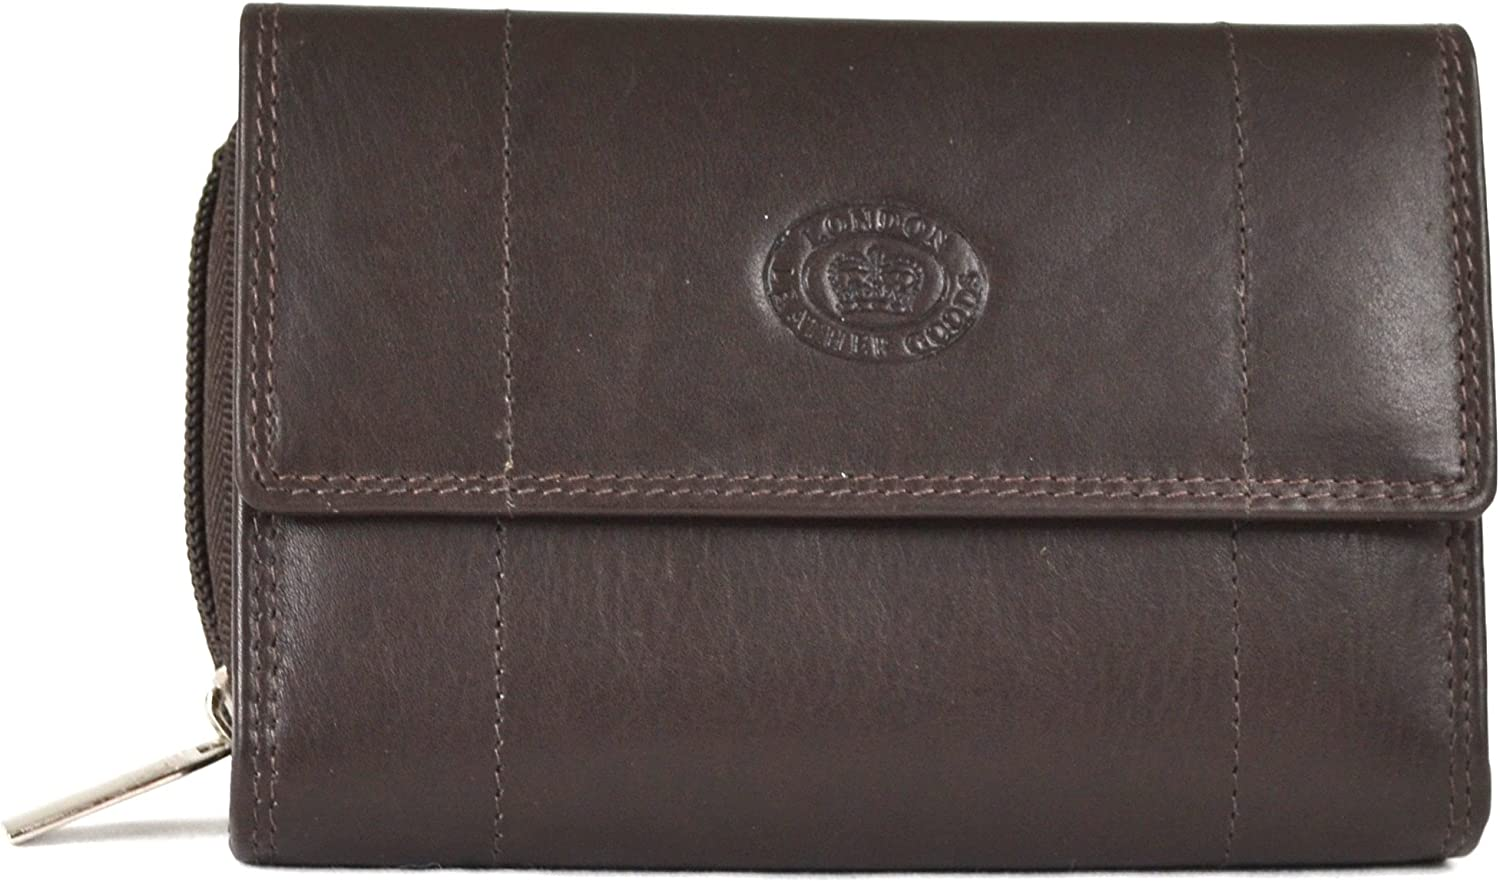 Ladies Soft Nappa Leather Zip-Around Wallet, Double Credit Card Swing Section